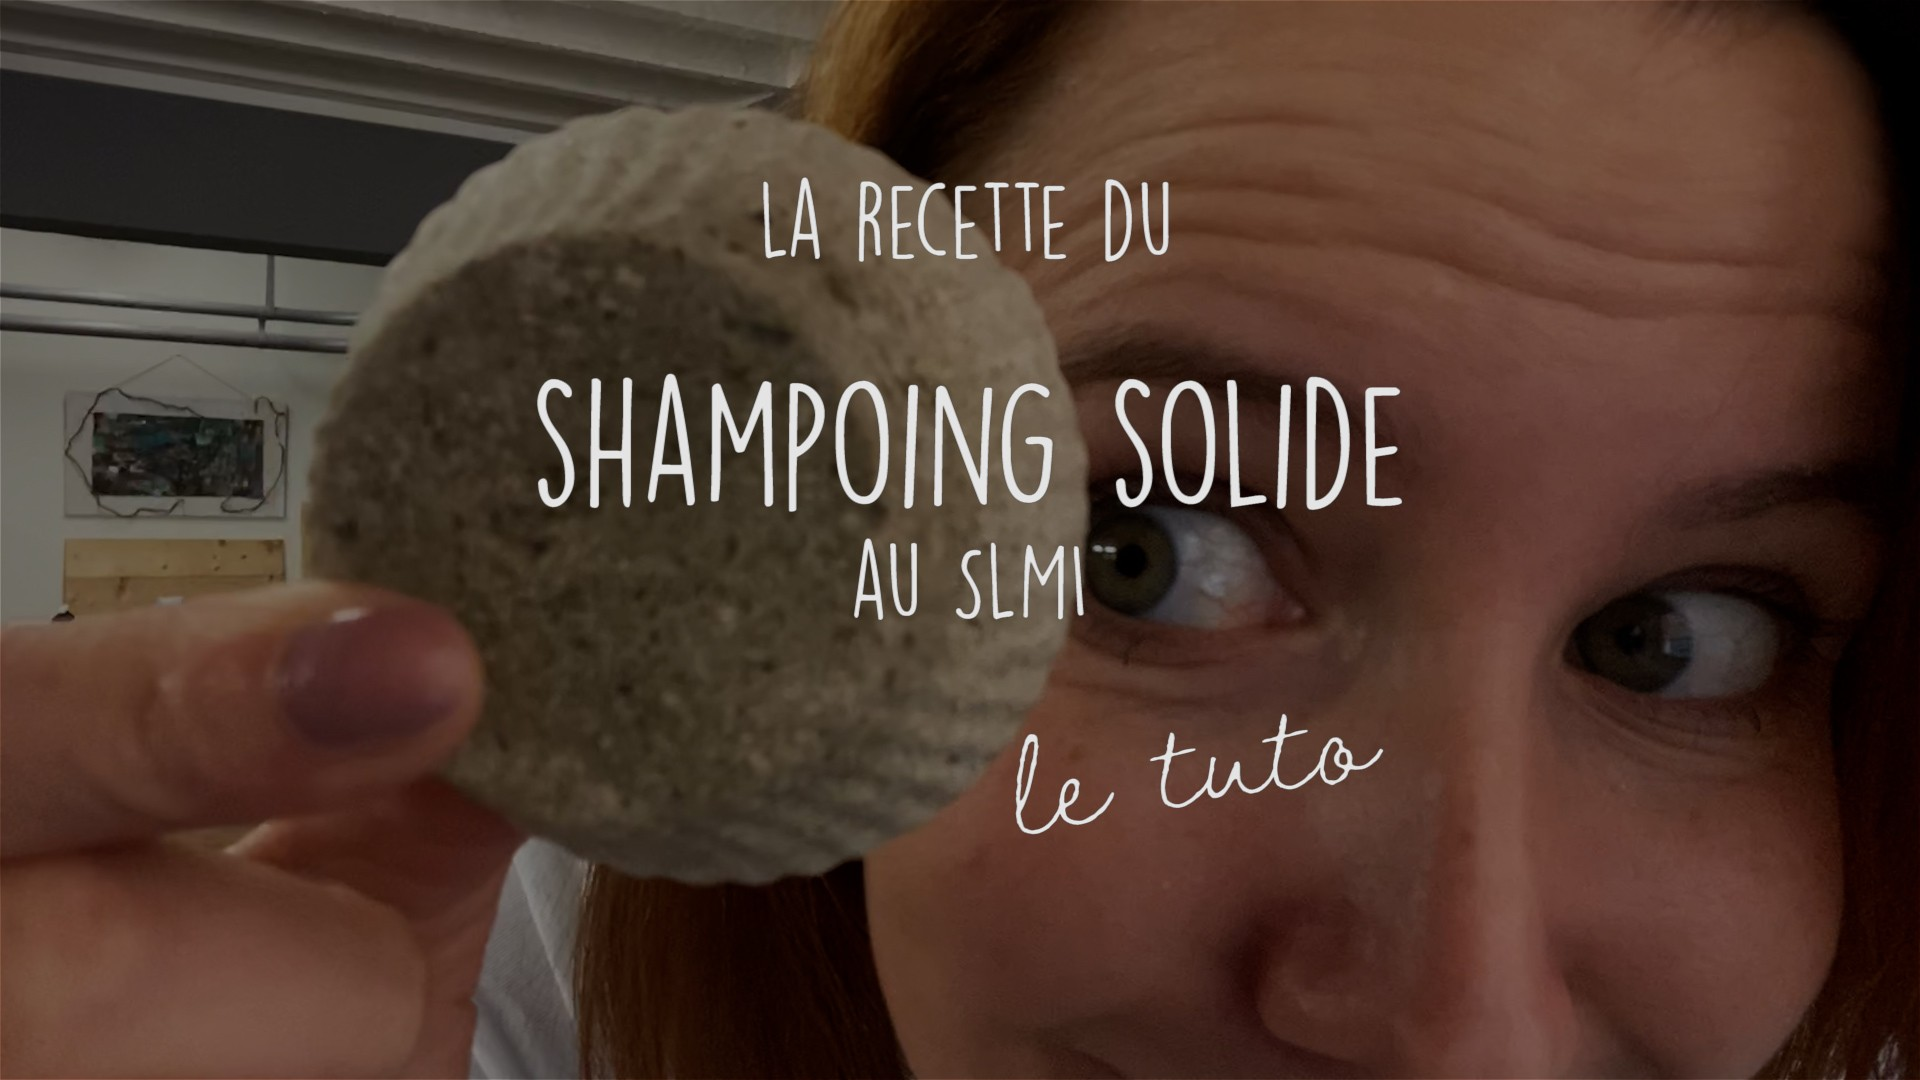 Shampoing solide au SLMI - Recettes & tuto